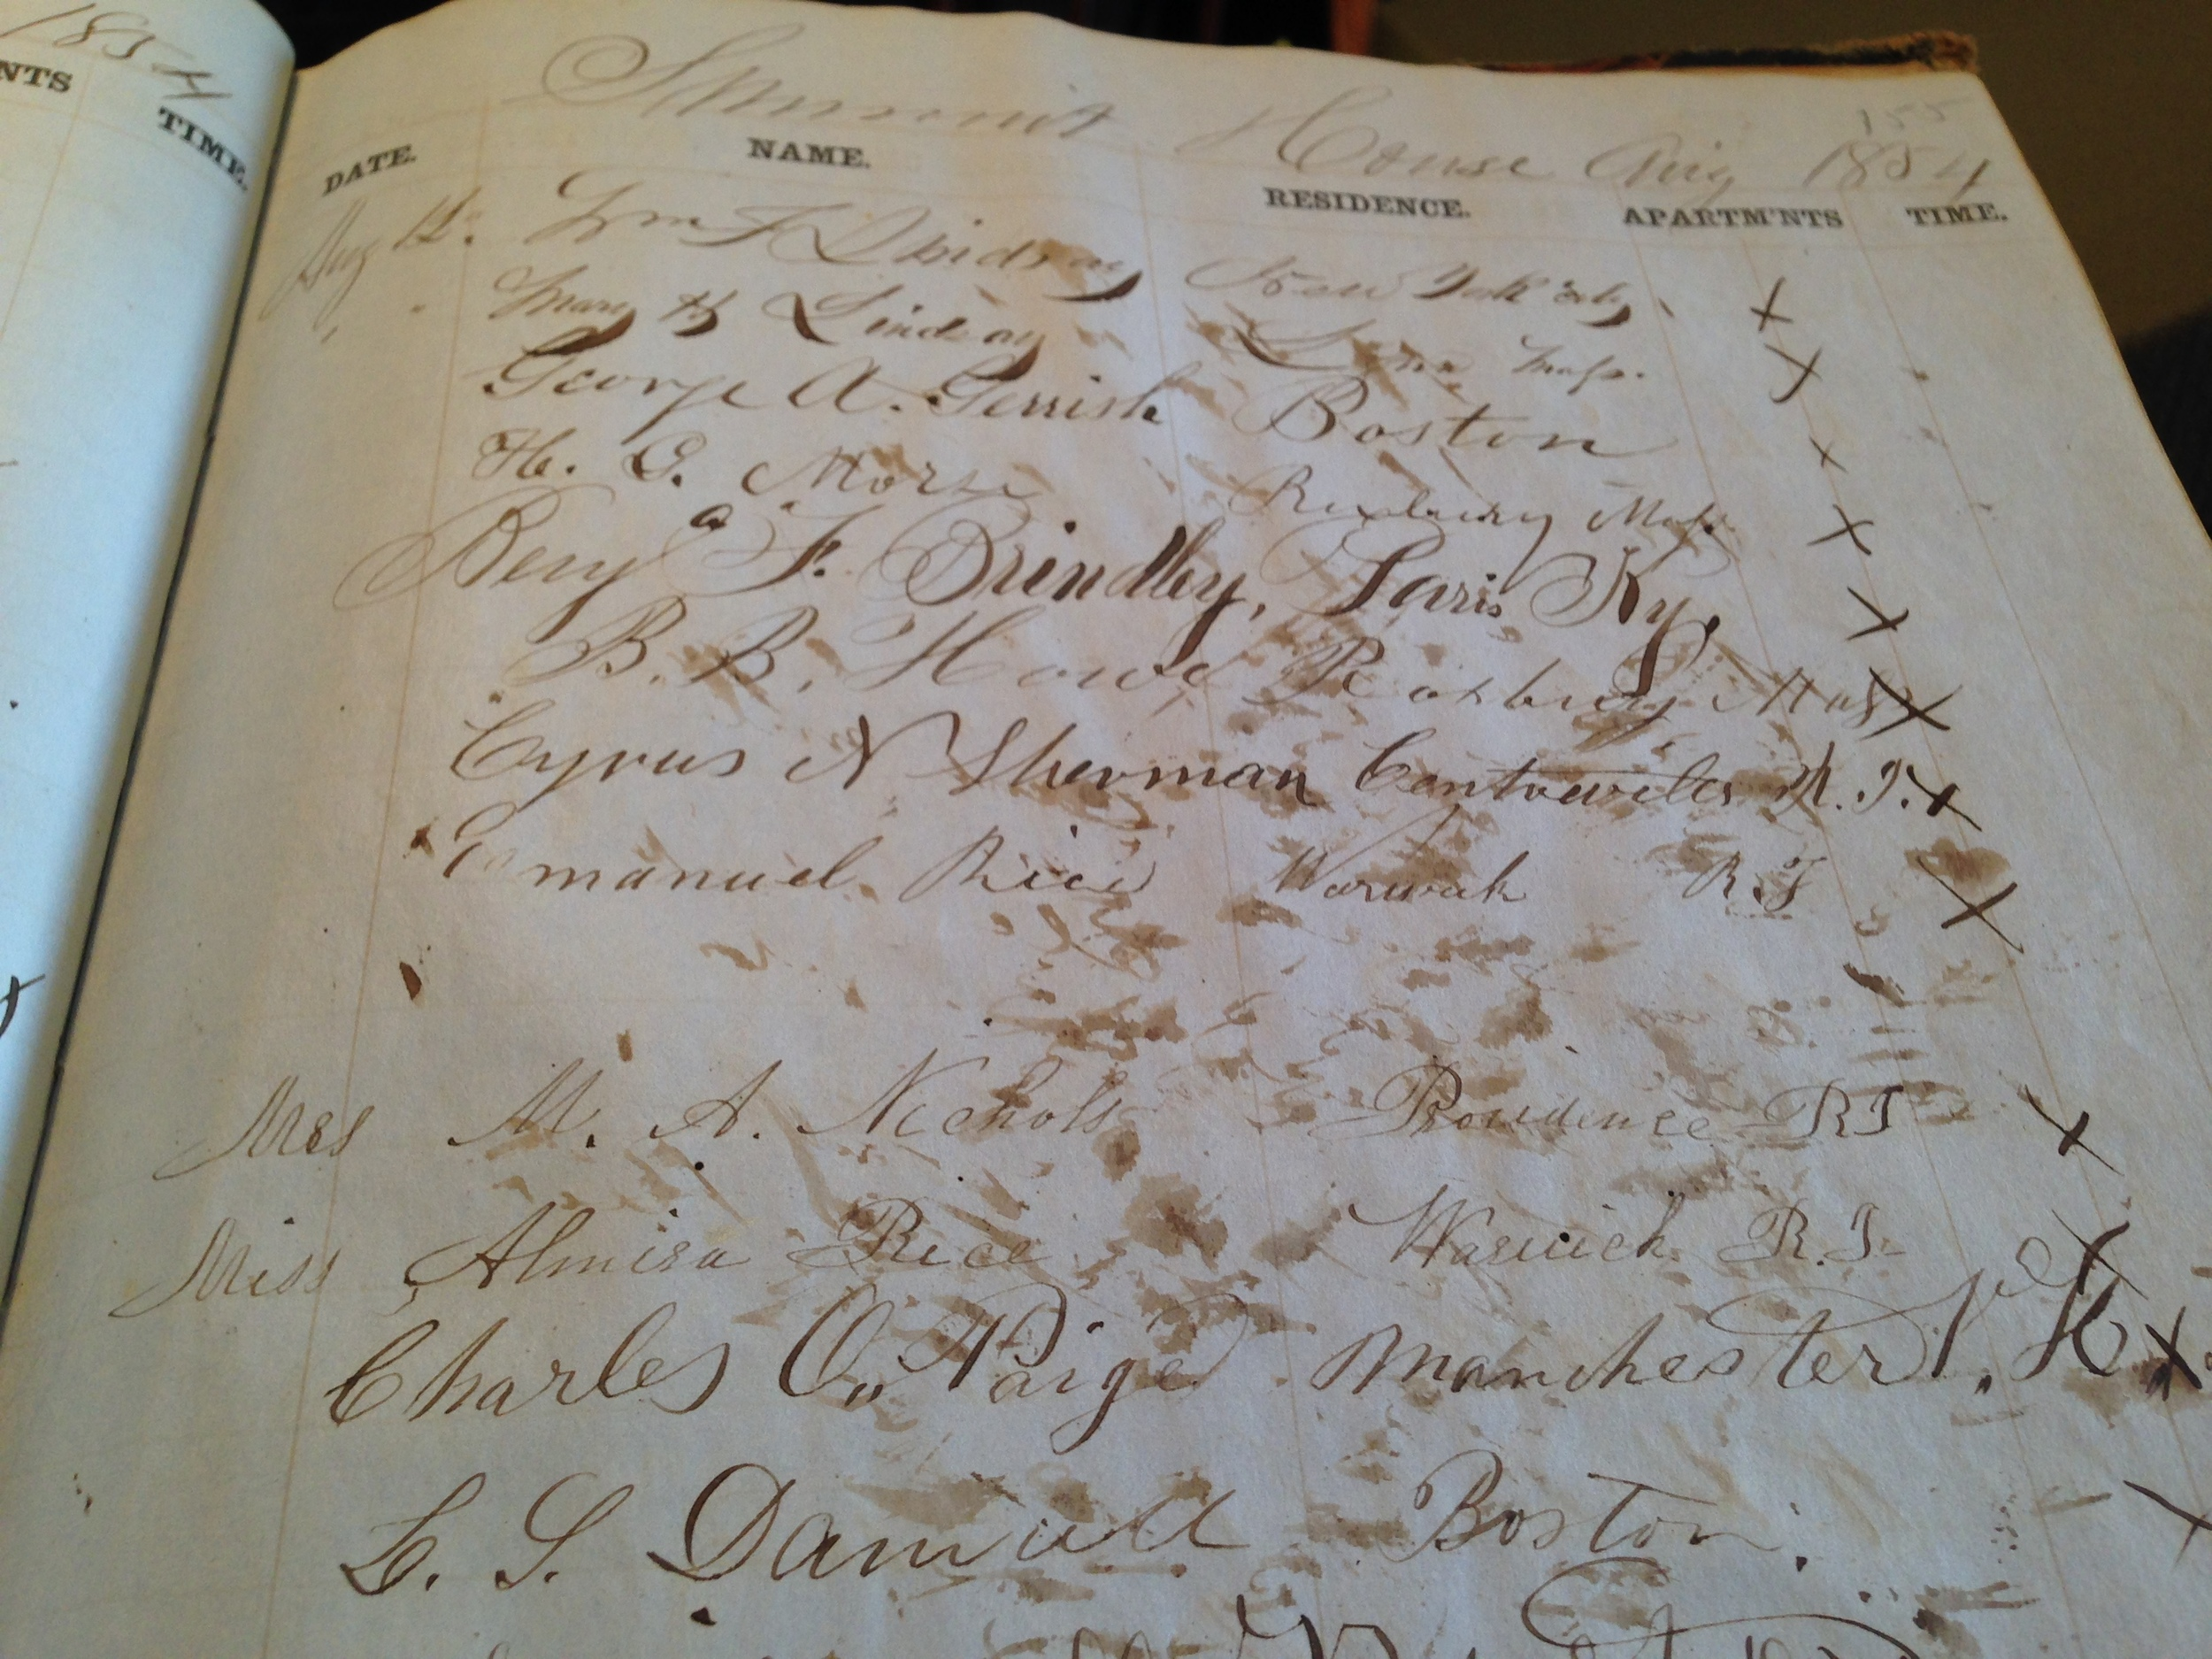 These photos are of the 1854 Mt. Washington Summit House Guest Registry, which is housed at the New Hampshire Historical Society in Concord, NH.